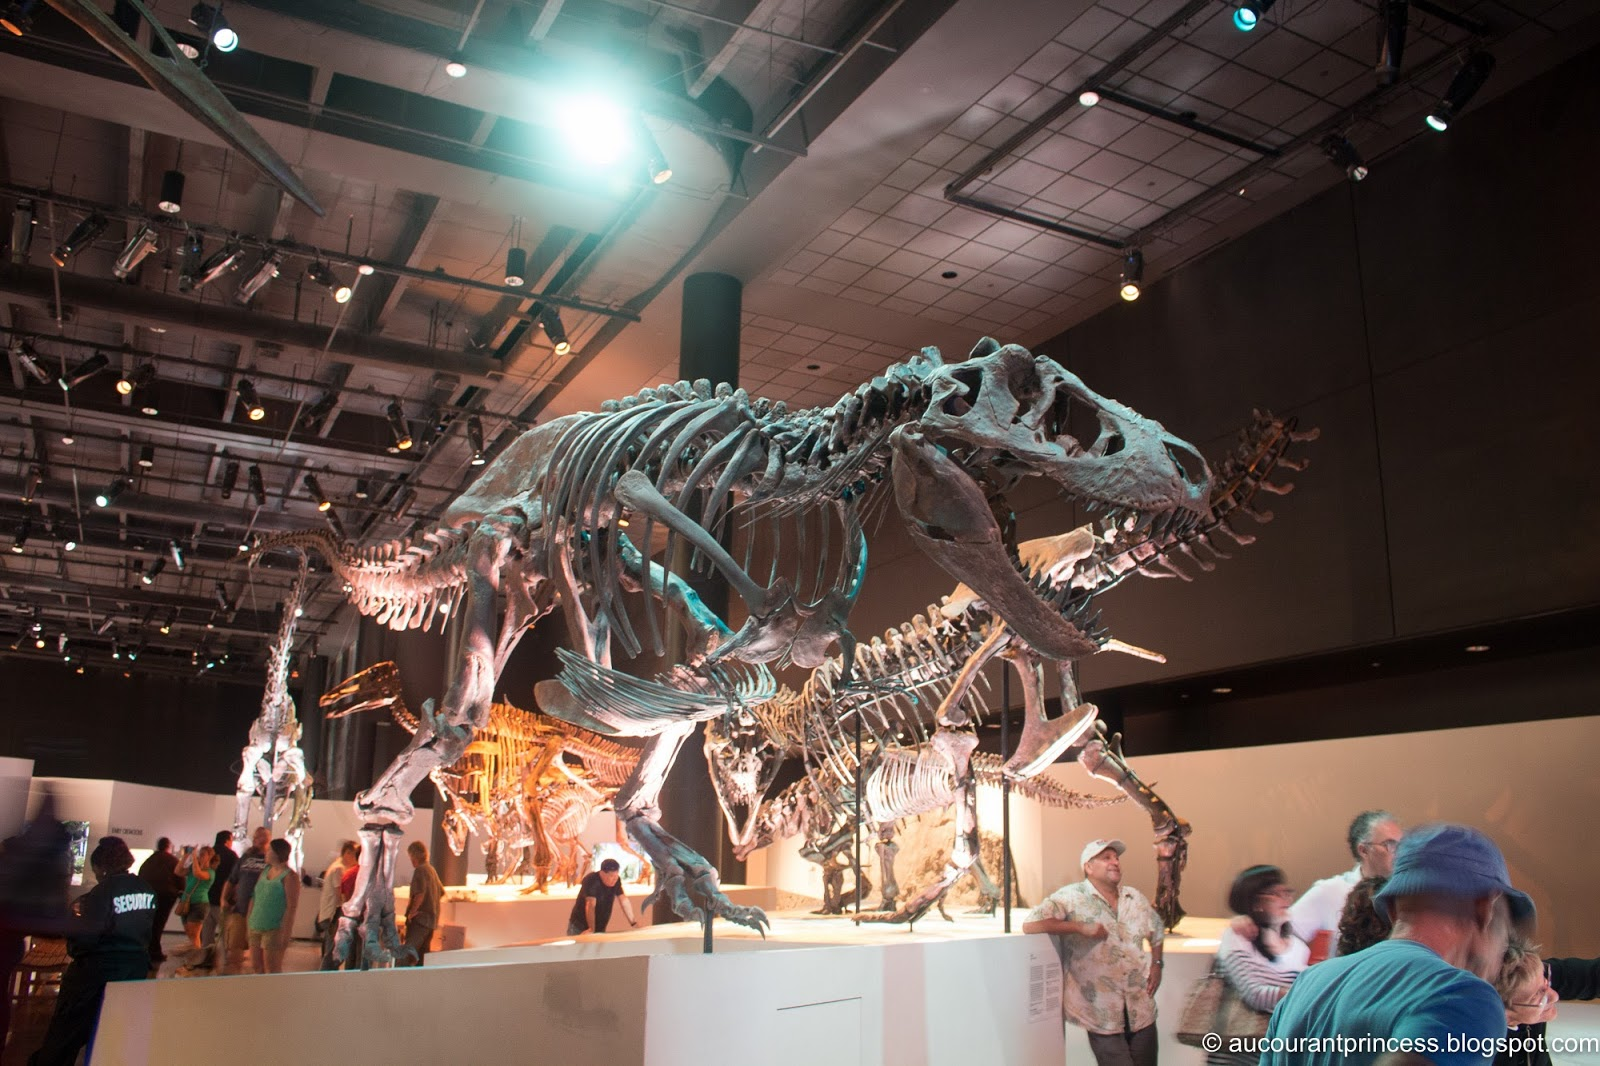 Houston Museum of Natural Science: Things To Do in Houston, Texas, USA